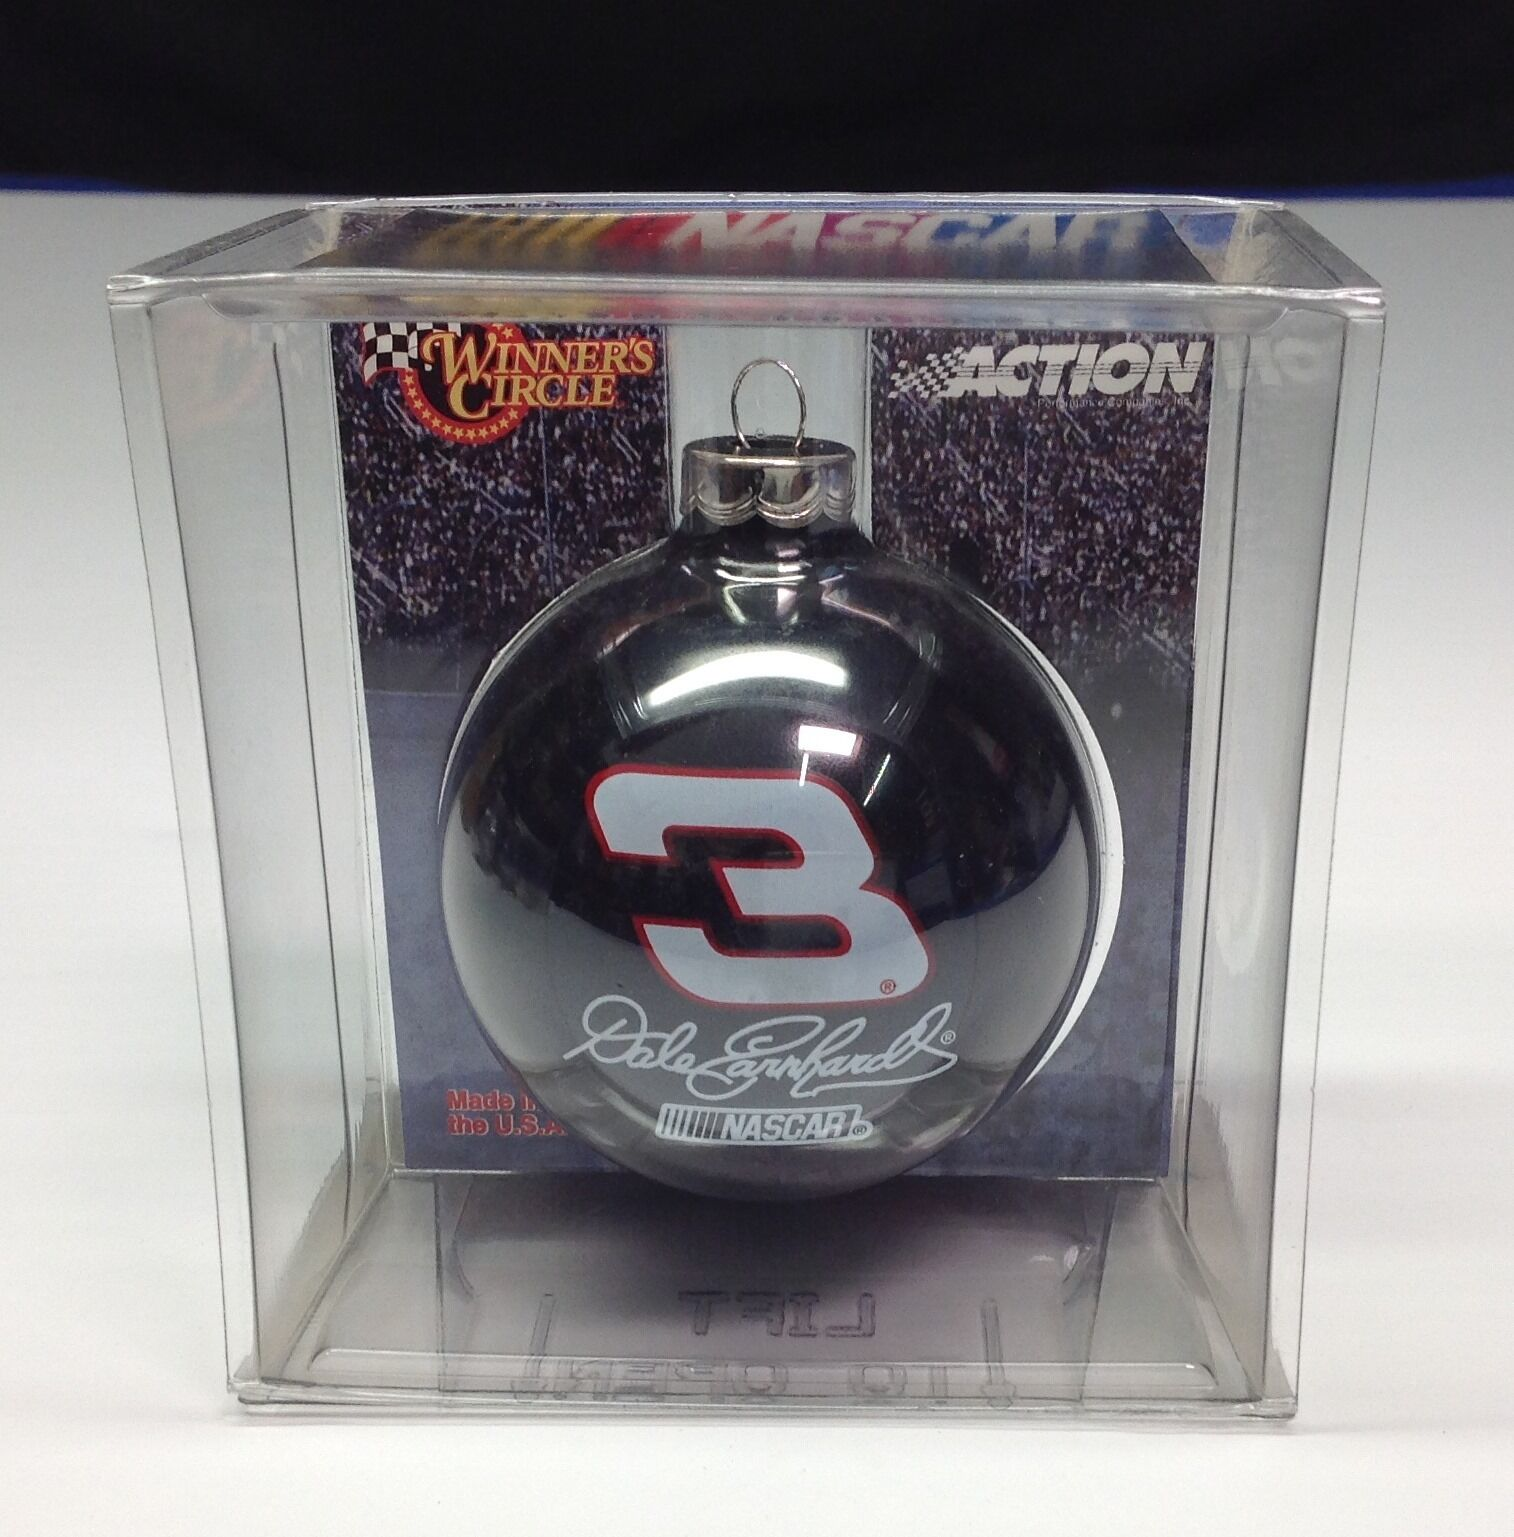 NASCAR Dale Earnhardt Glass Ball Christmas Ornament